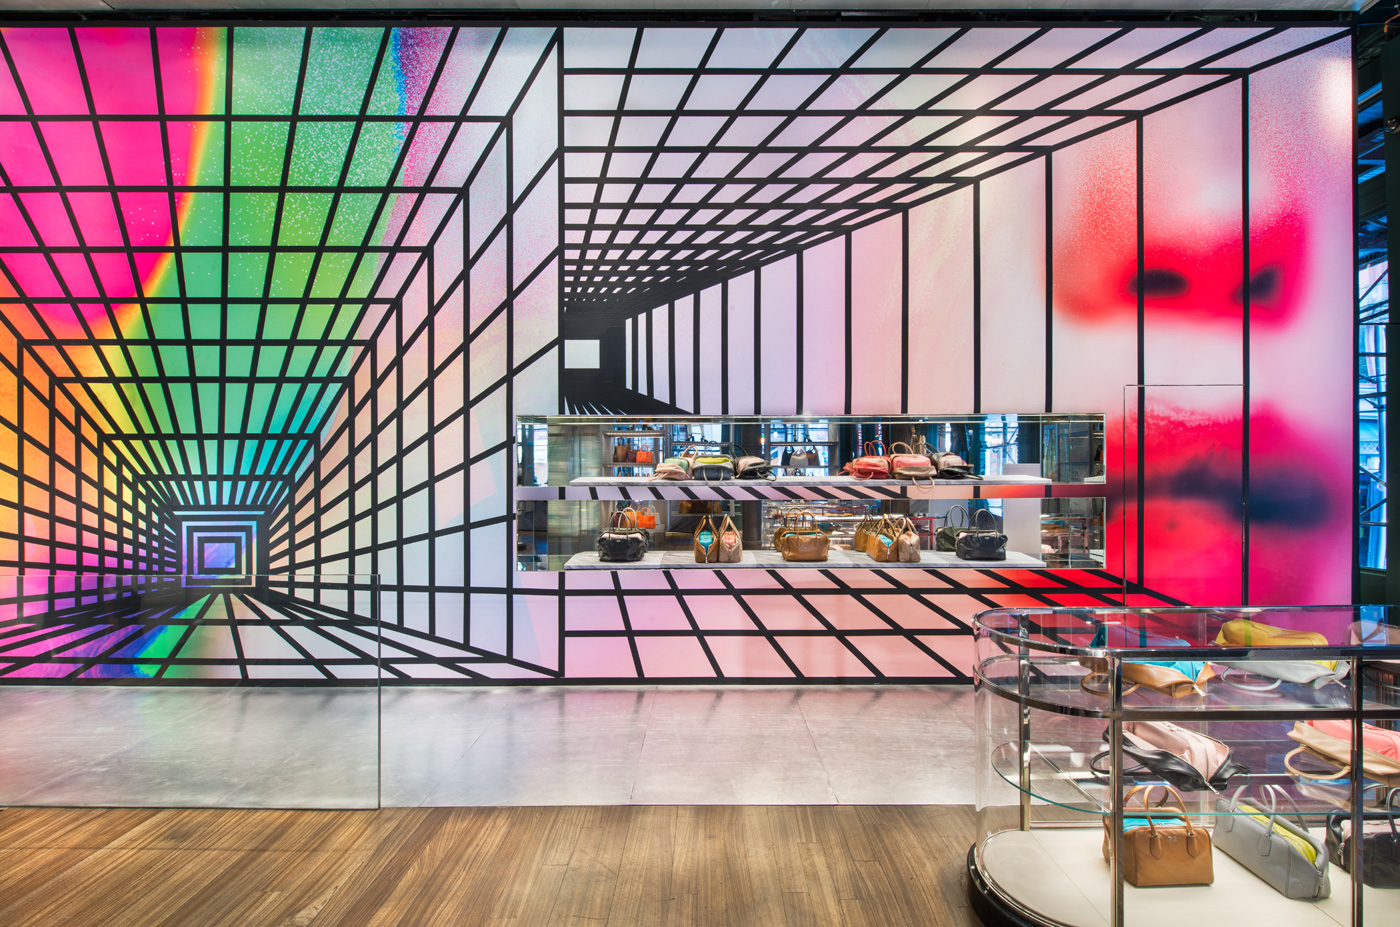 Prada broadway epicenter in nyc gets a wallpaper makeover for Broadway wall mural